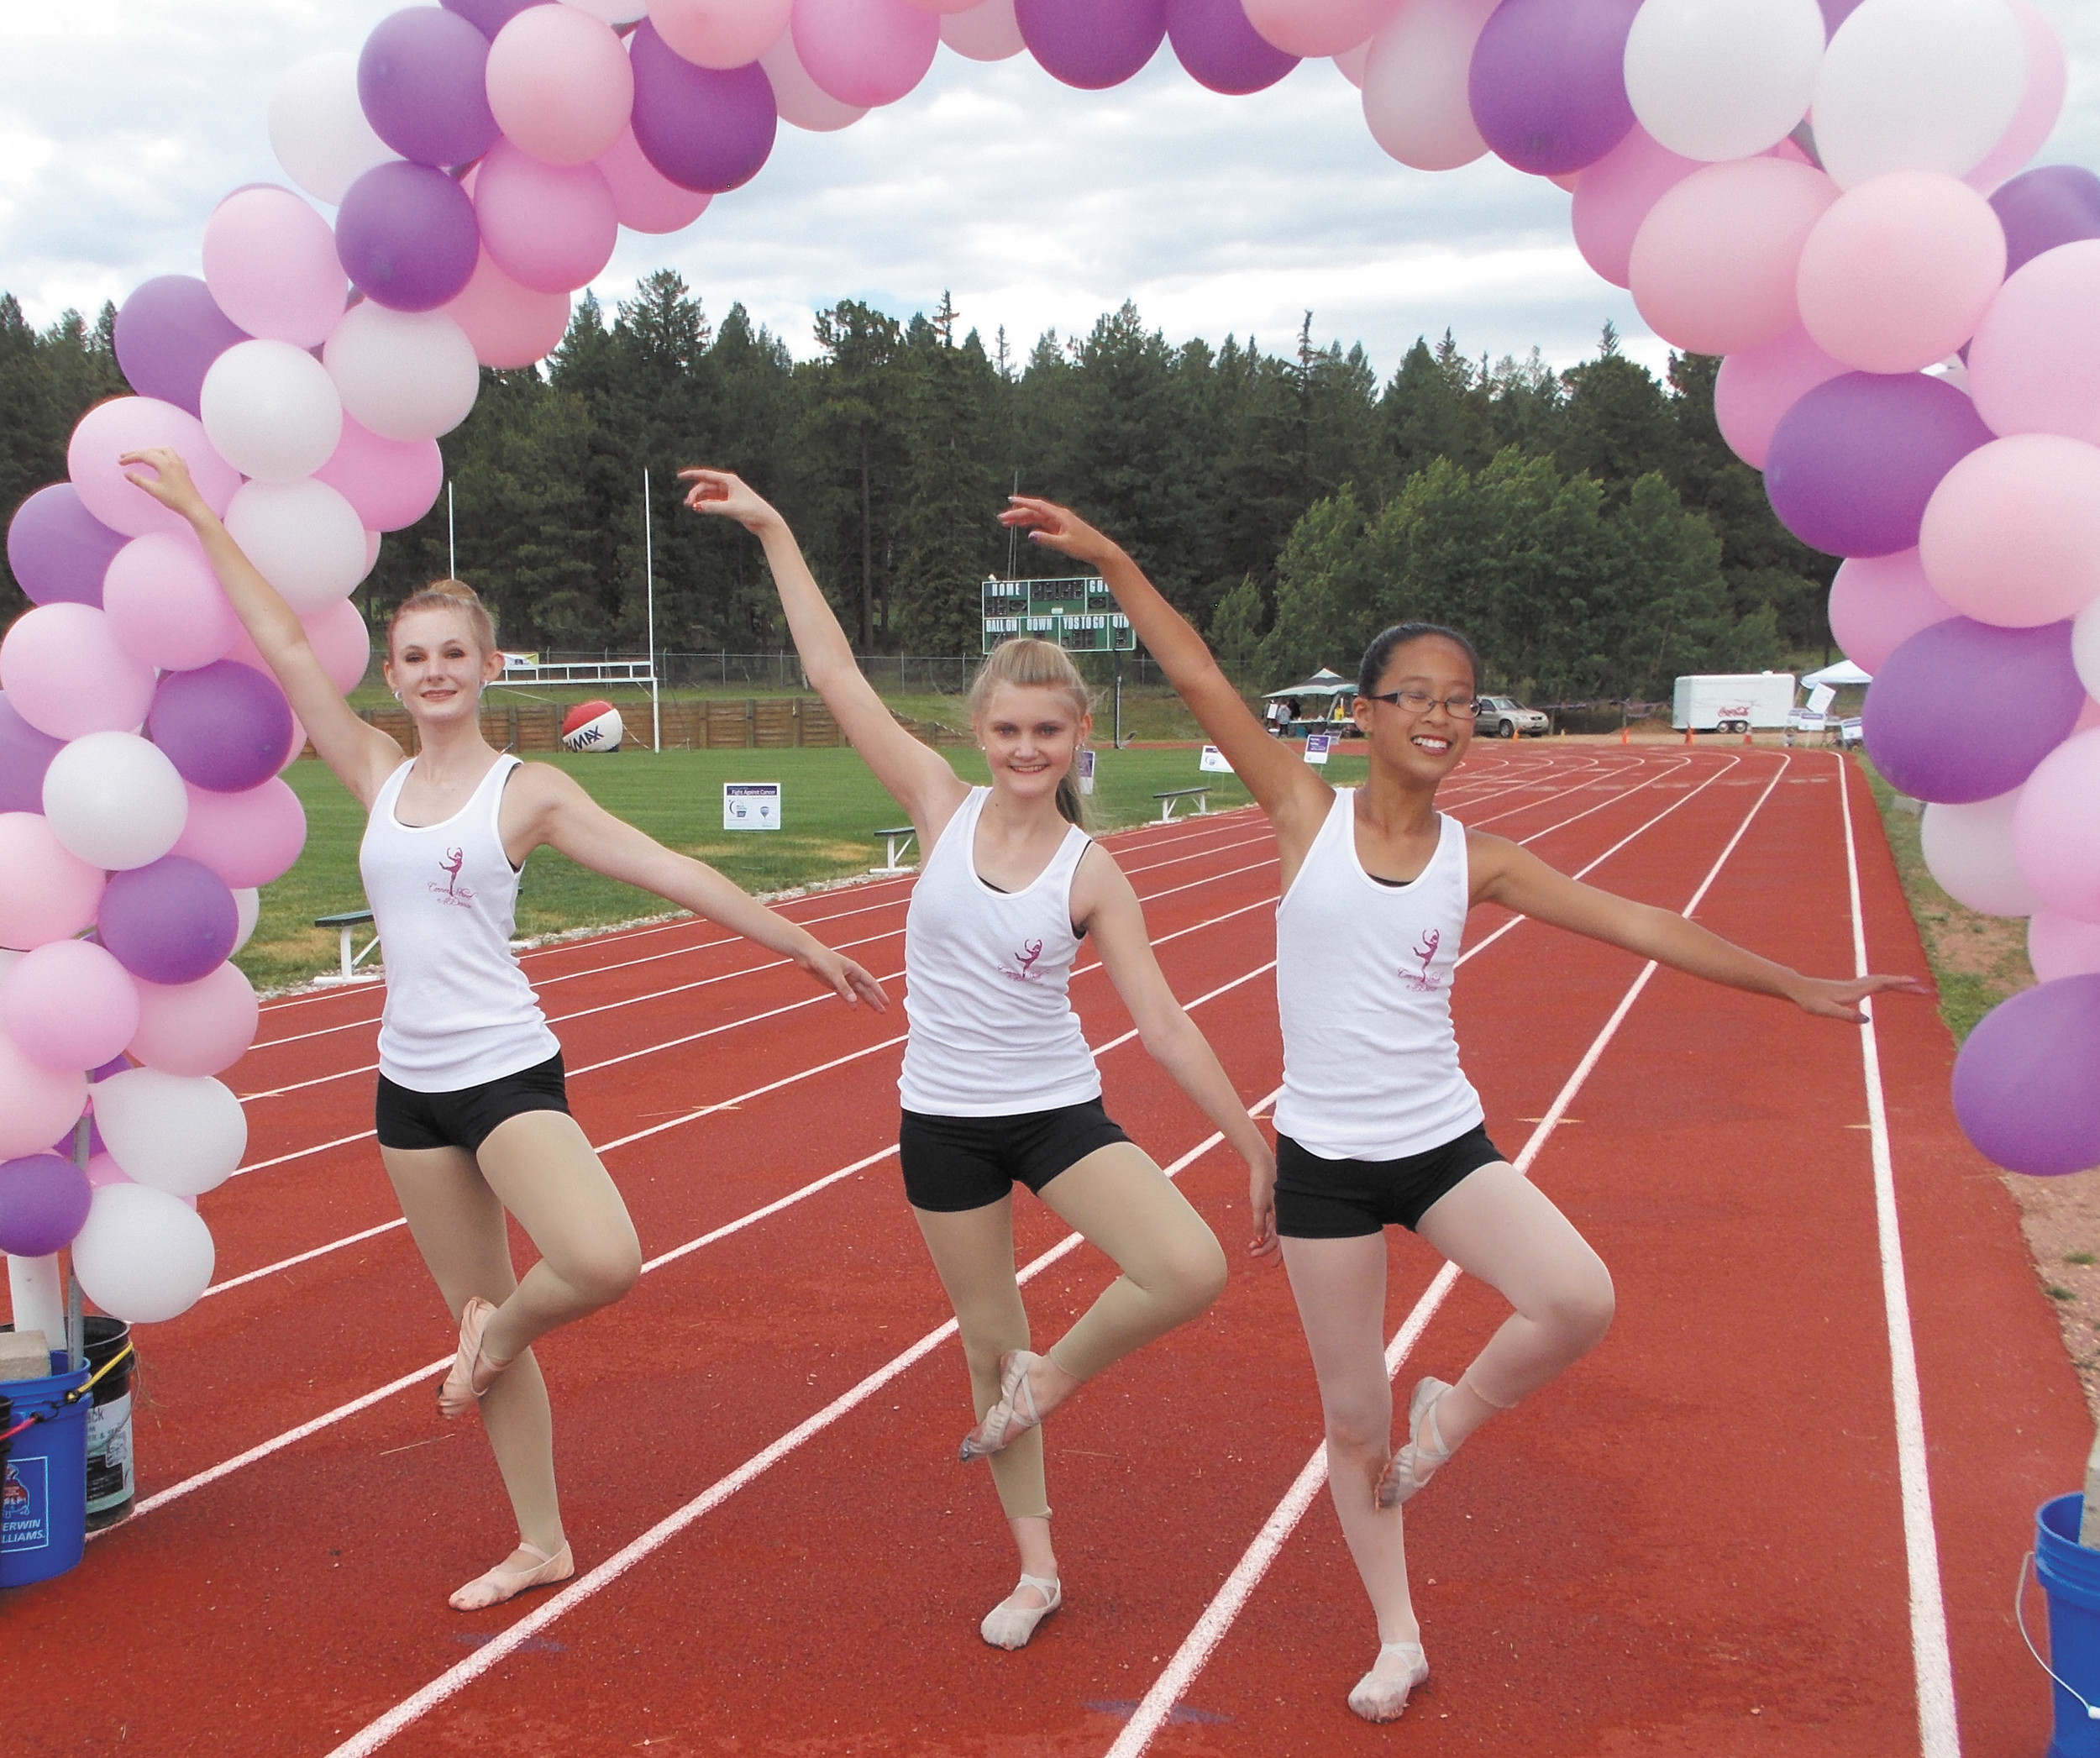 Cornerstreet Dance students Breanna Skelton, 17, left, Cheyenne Kramer, 11 and Devon Beckum, 11, have just finished performing for the small crowd gathered for the Relay for Life of Teller County on July 26.